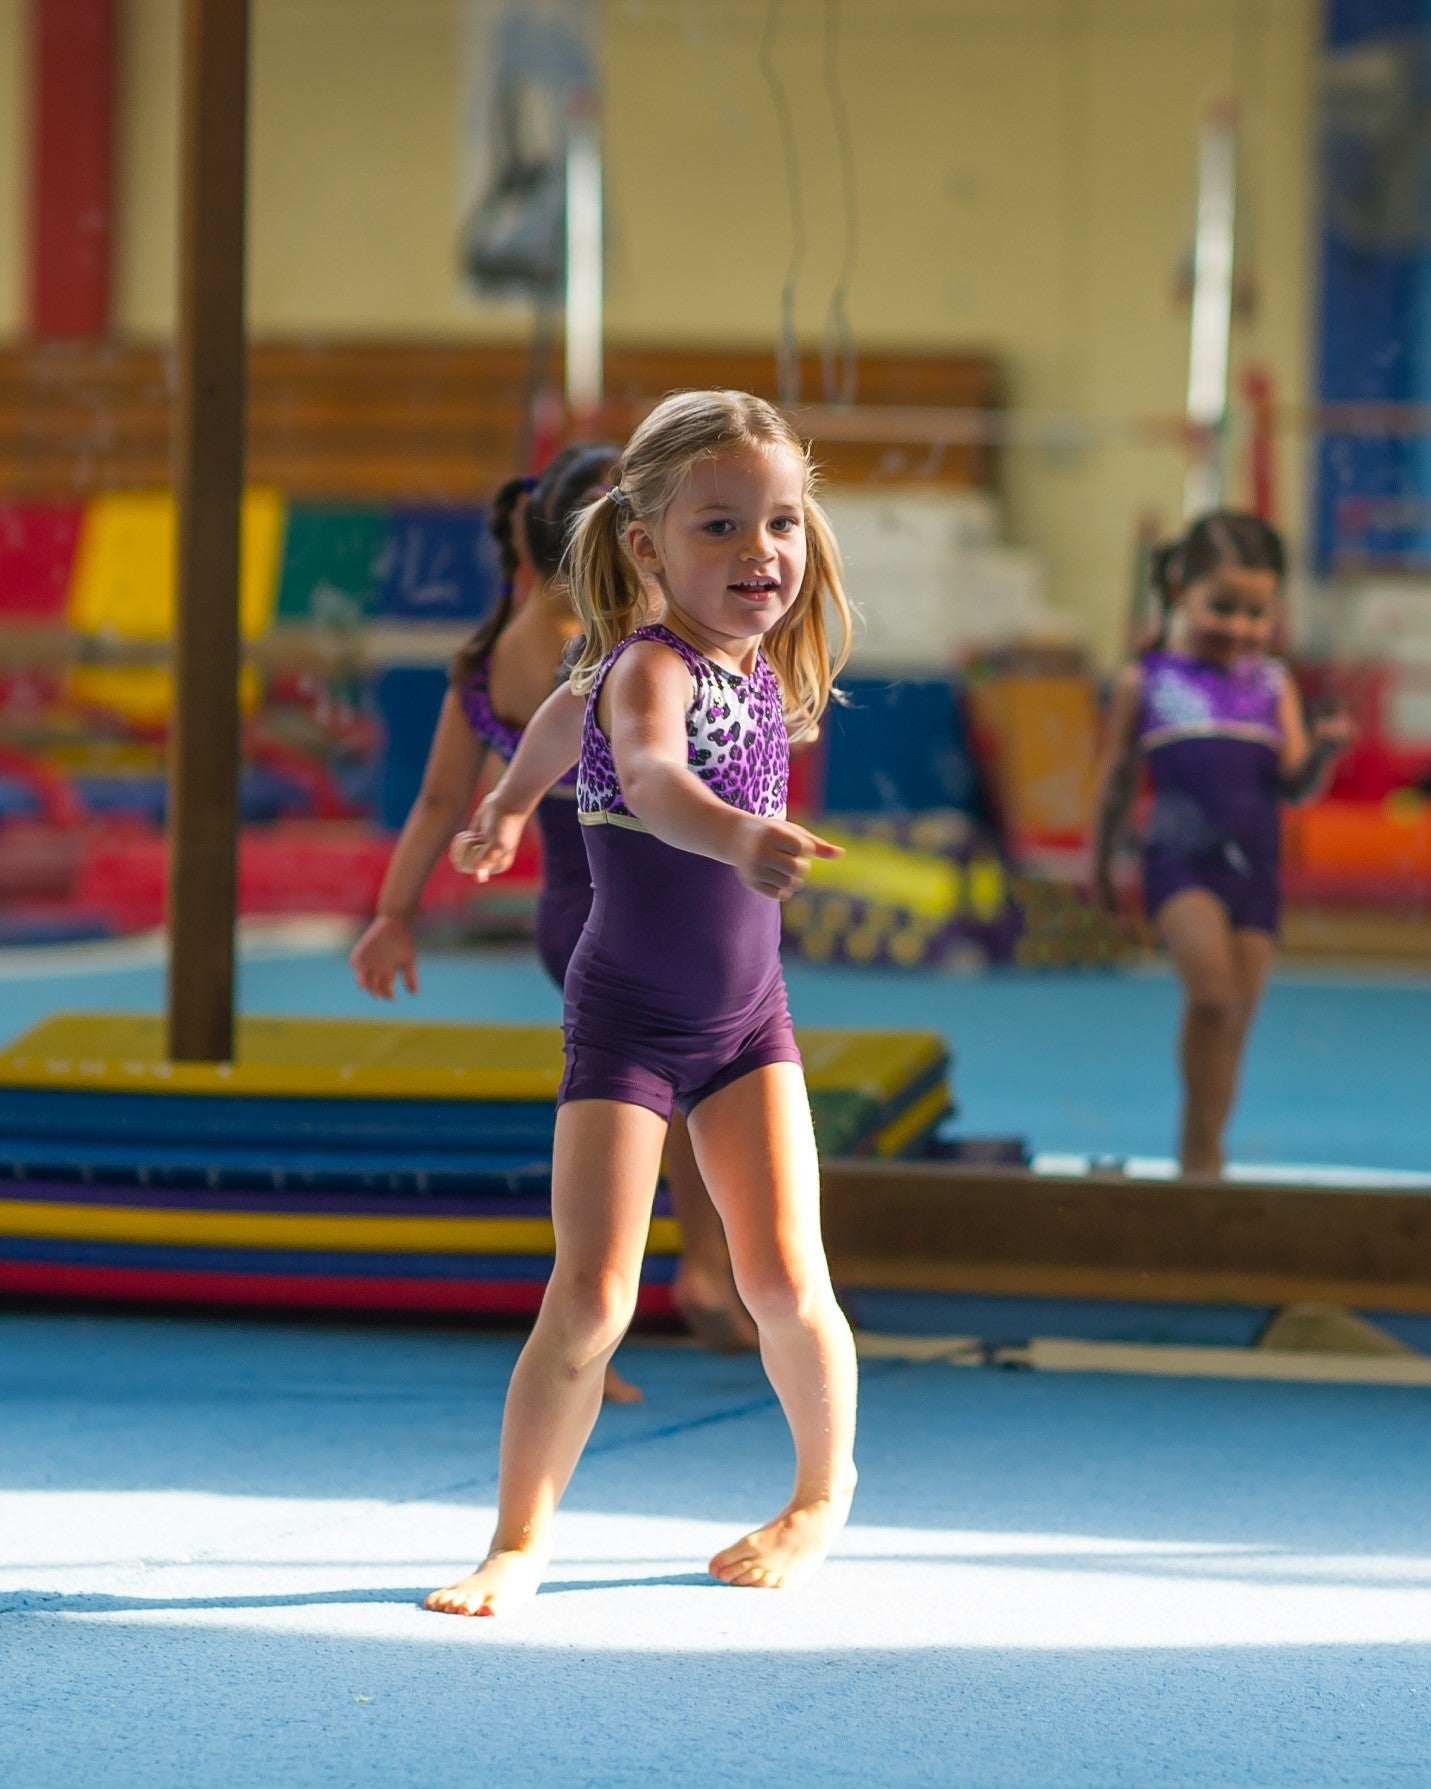 d3cb3758ba96 Where to Buy Gymnastics Leotards for Toddlers - Destira